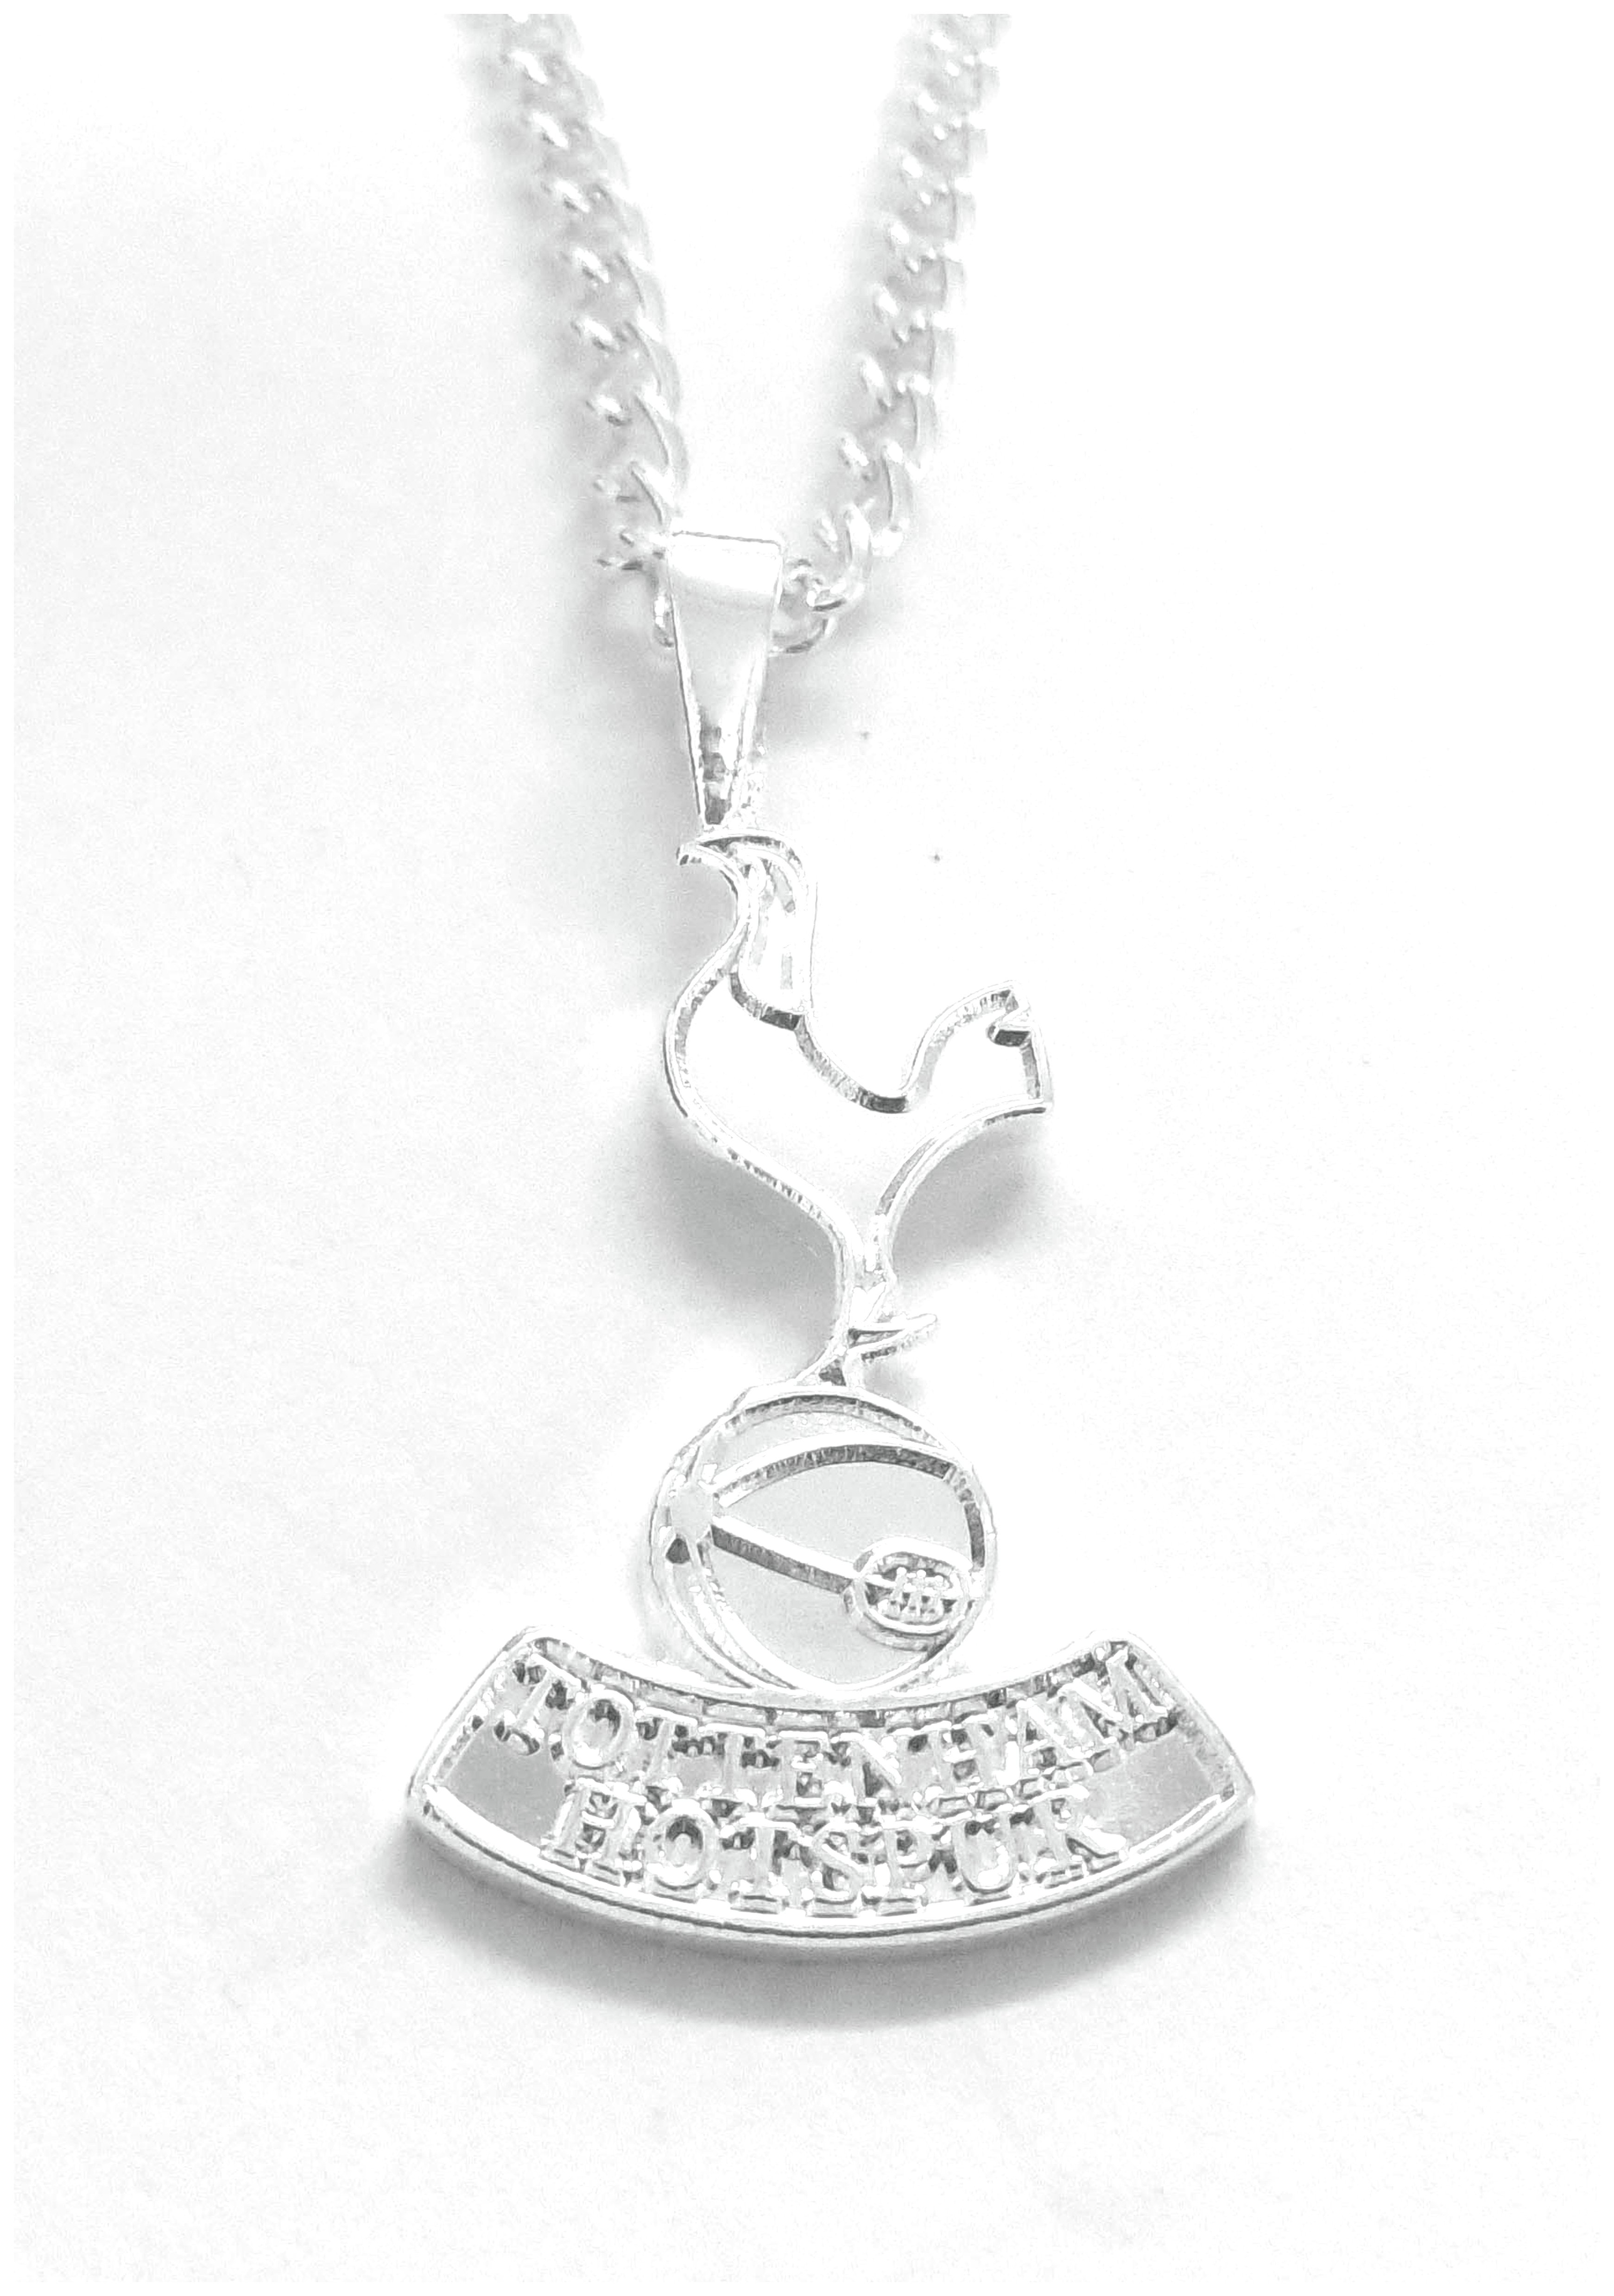 Silver Plated Tottenham Hotspur Pendant and Chain.